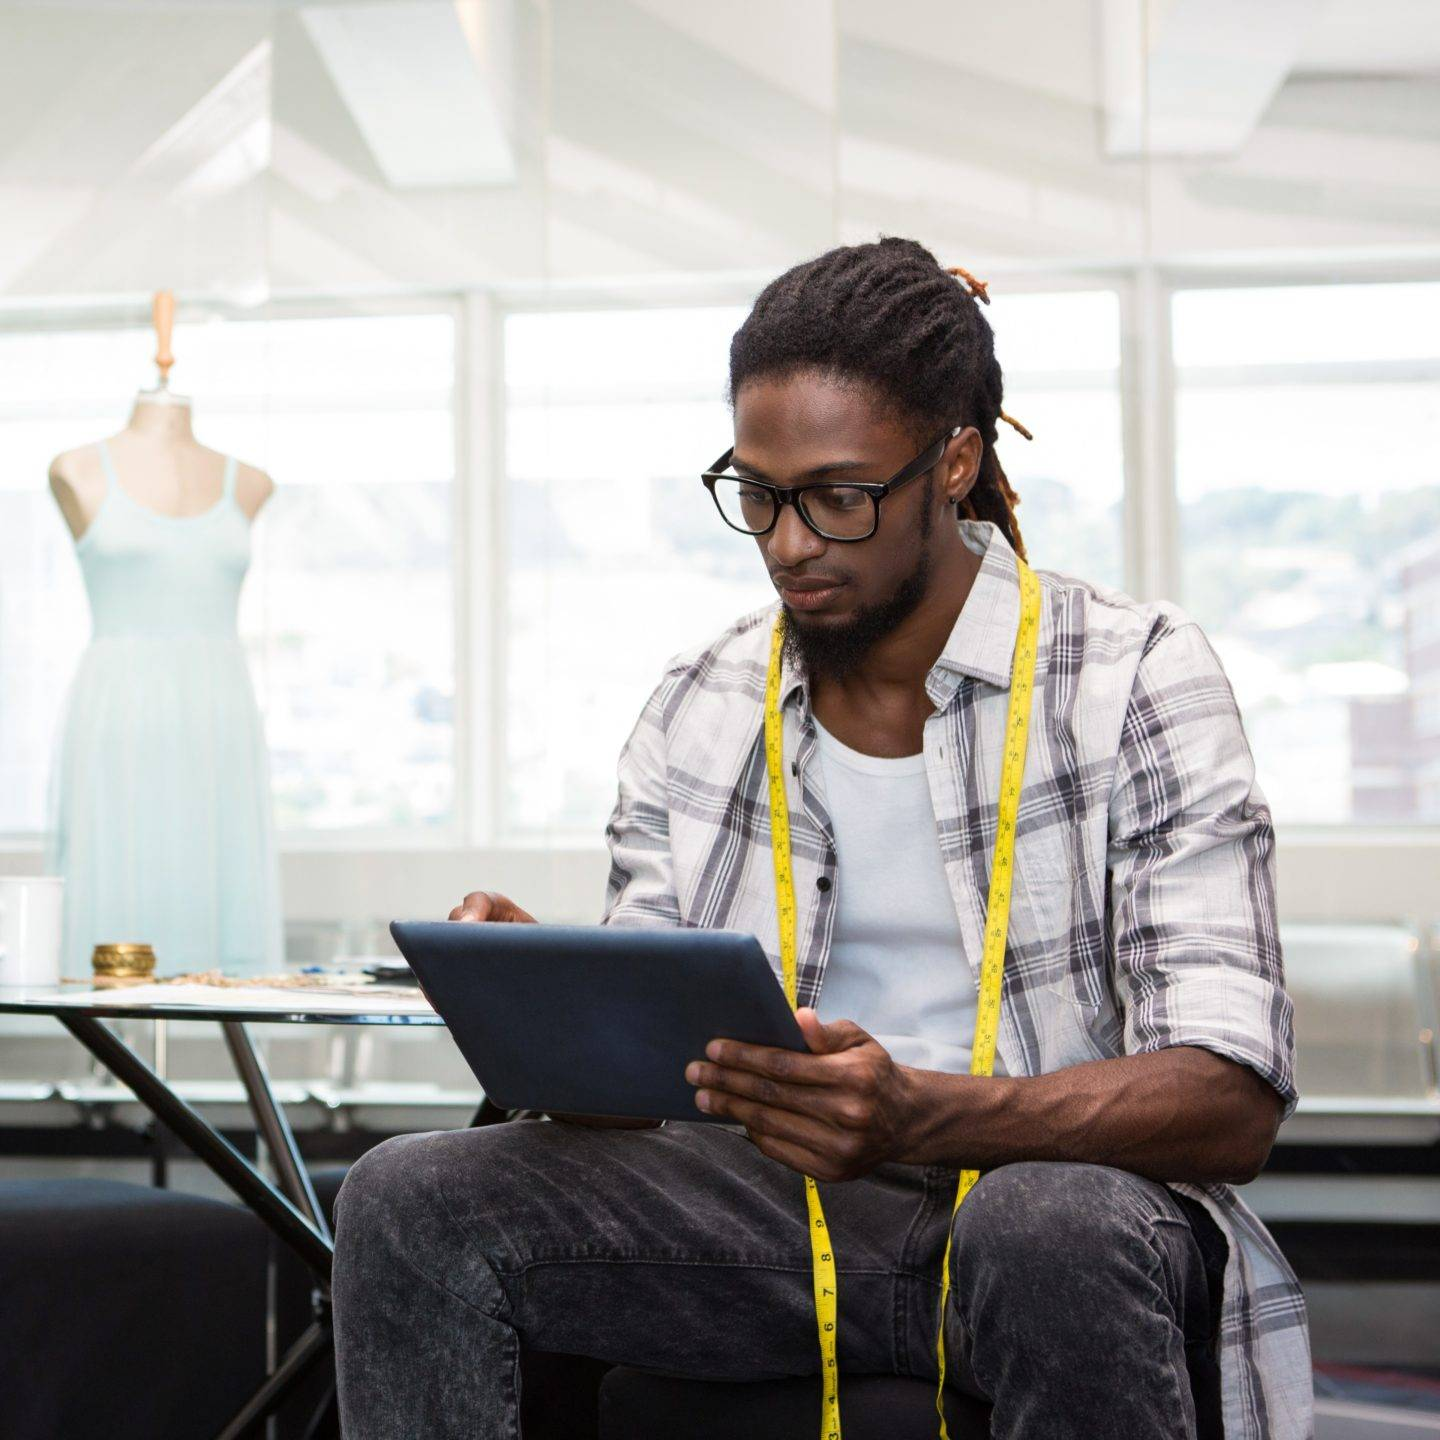 Man with dreadlocks looking at a tablet with yellow measuring tape around neck